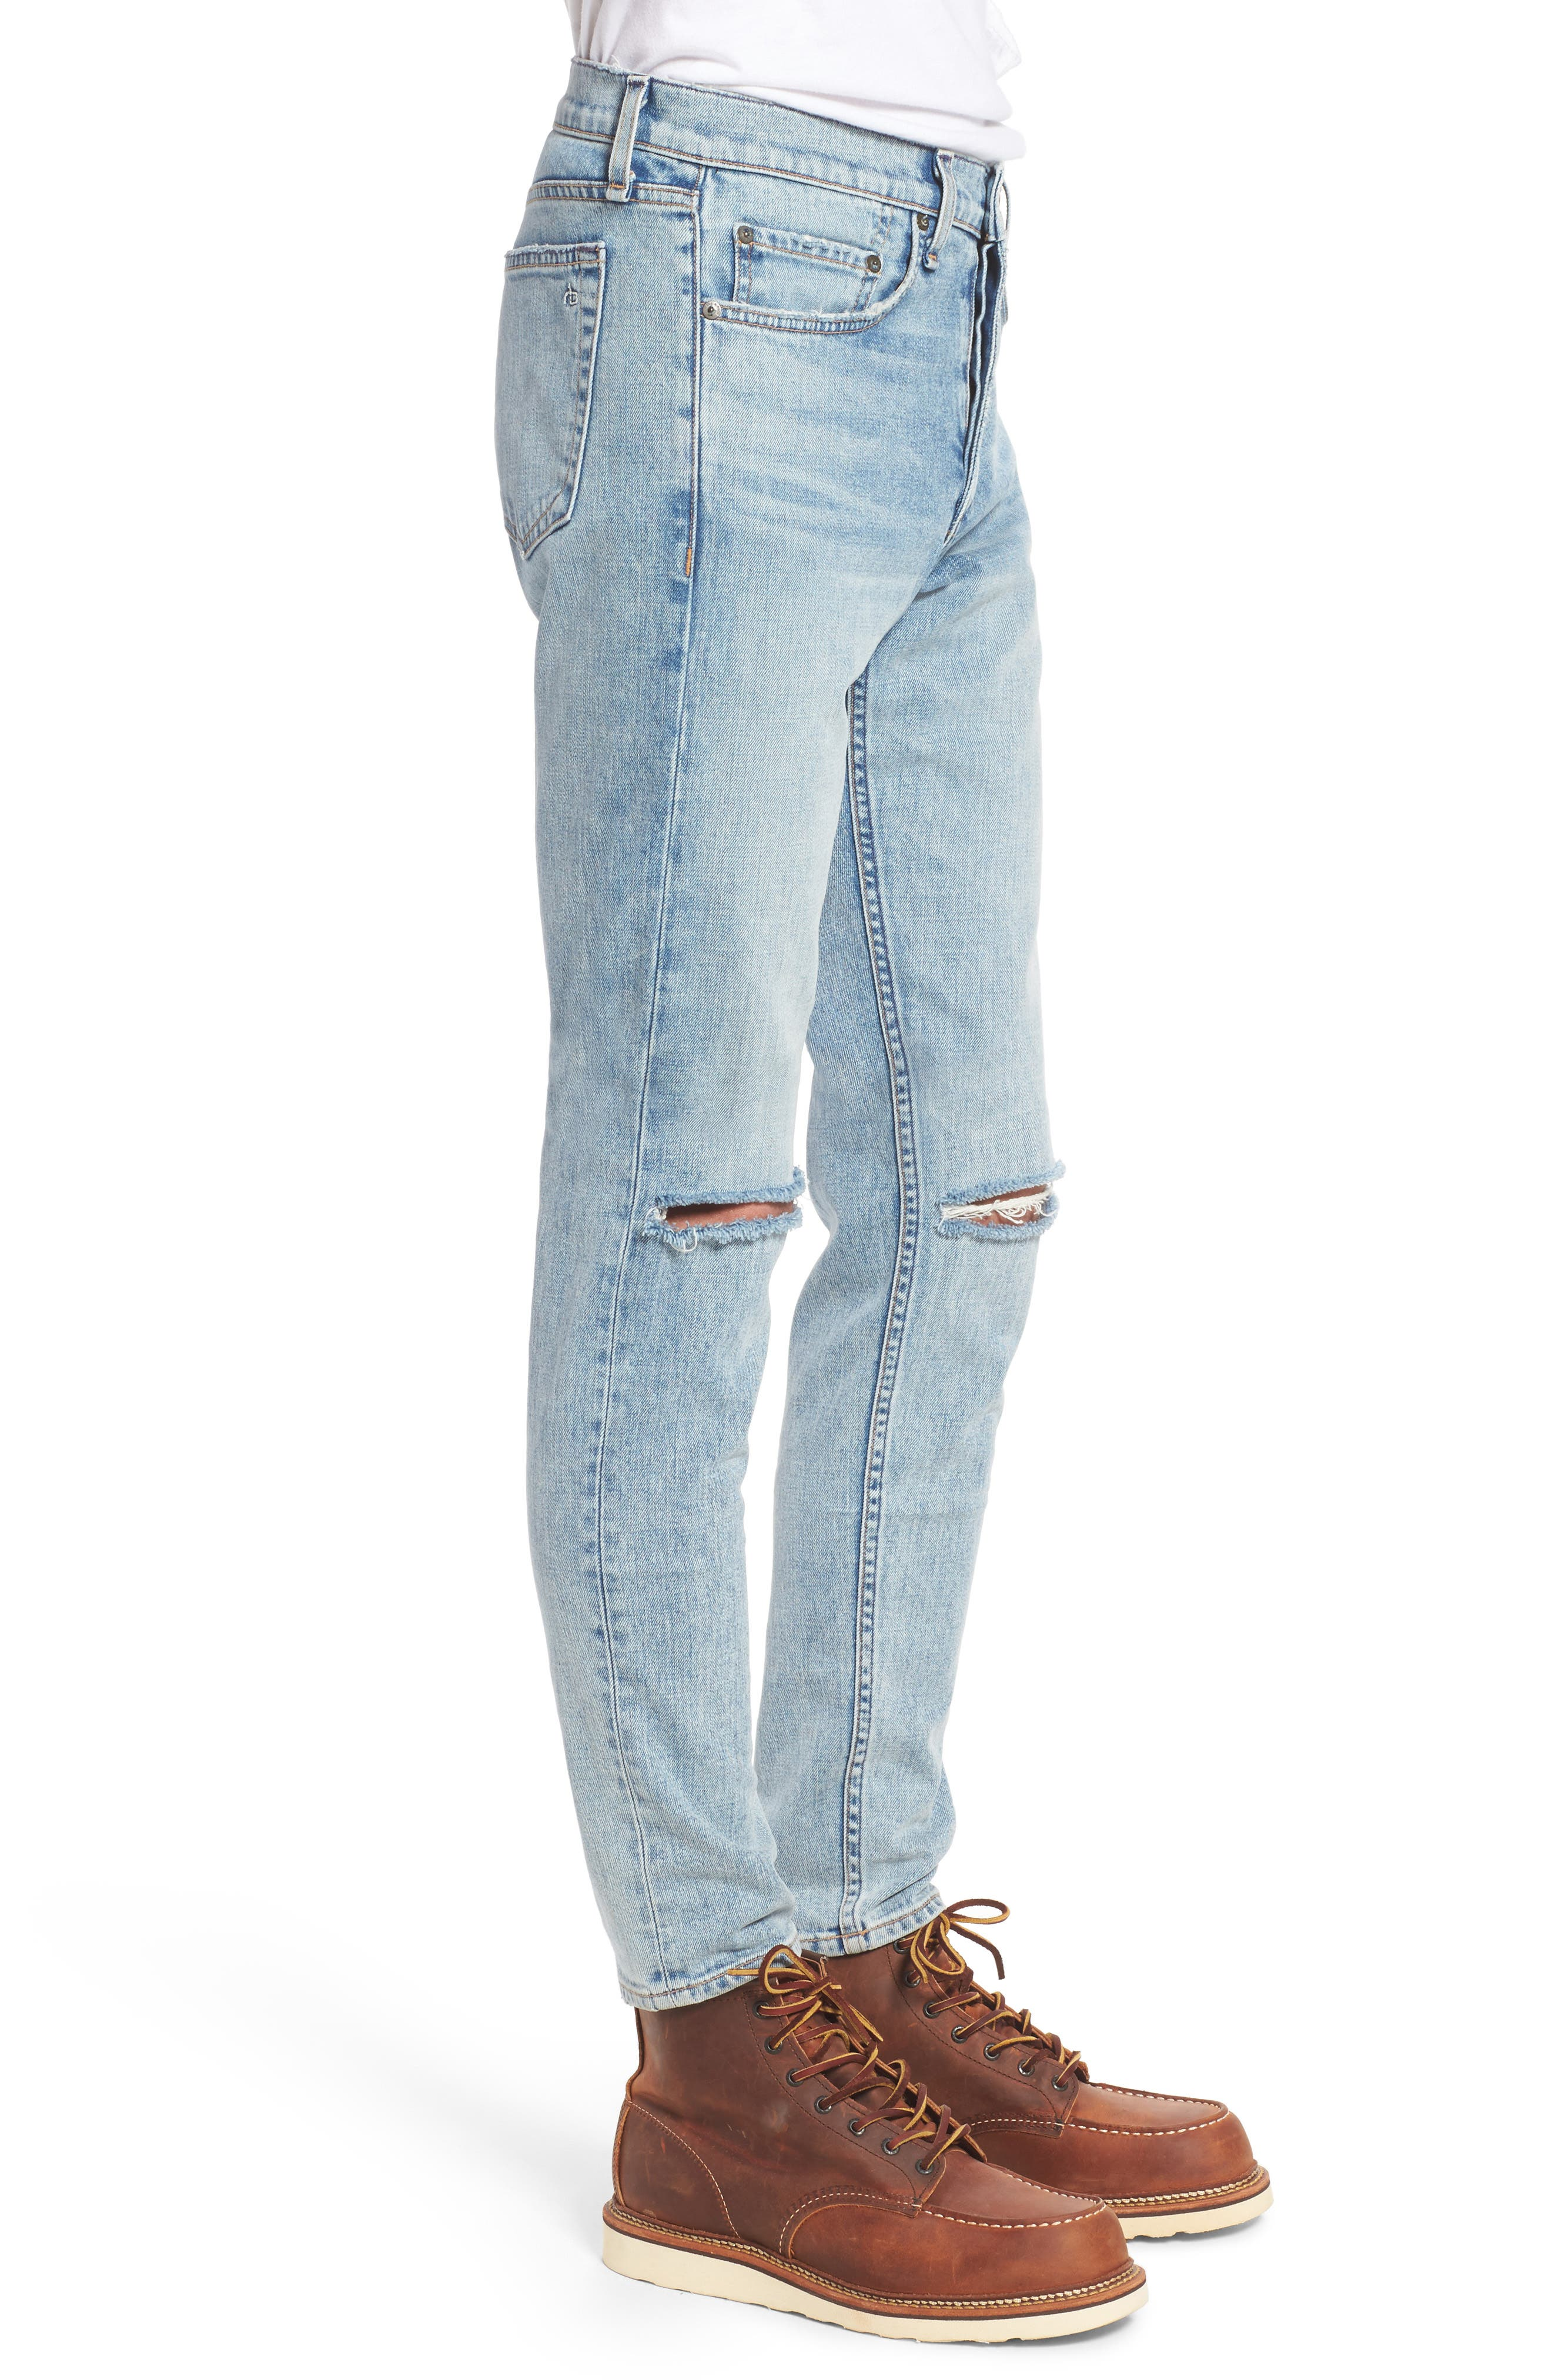 Fit 1 Skinny Fit Jeans,                             Alternate thumbnail 3, color,                             Jameson With Holes